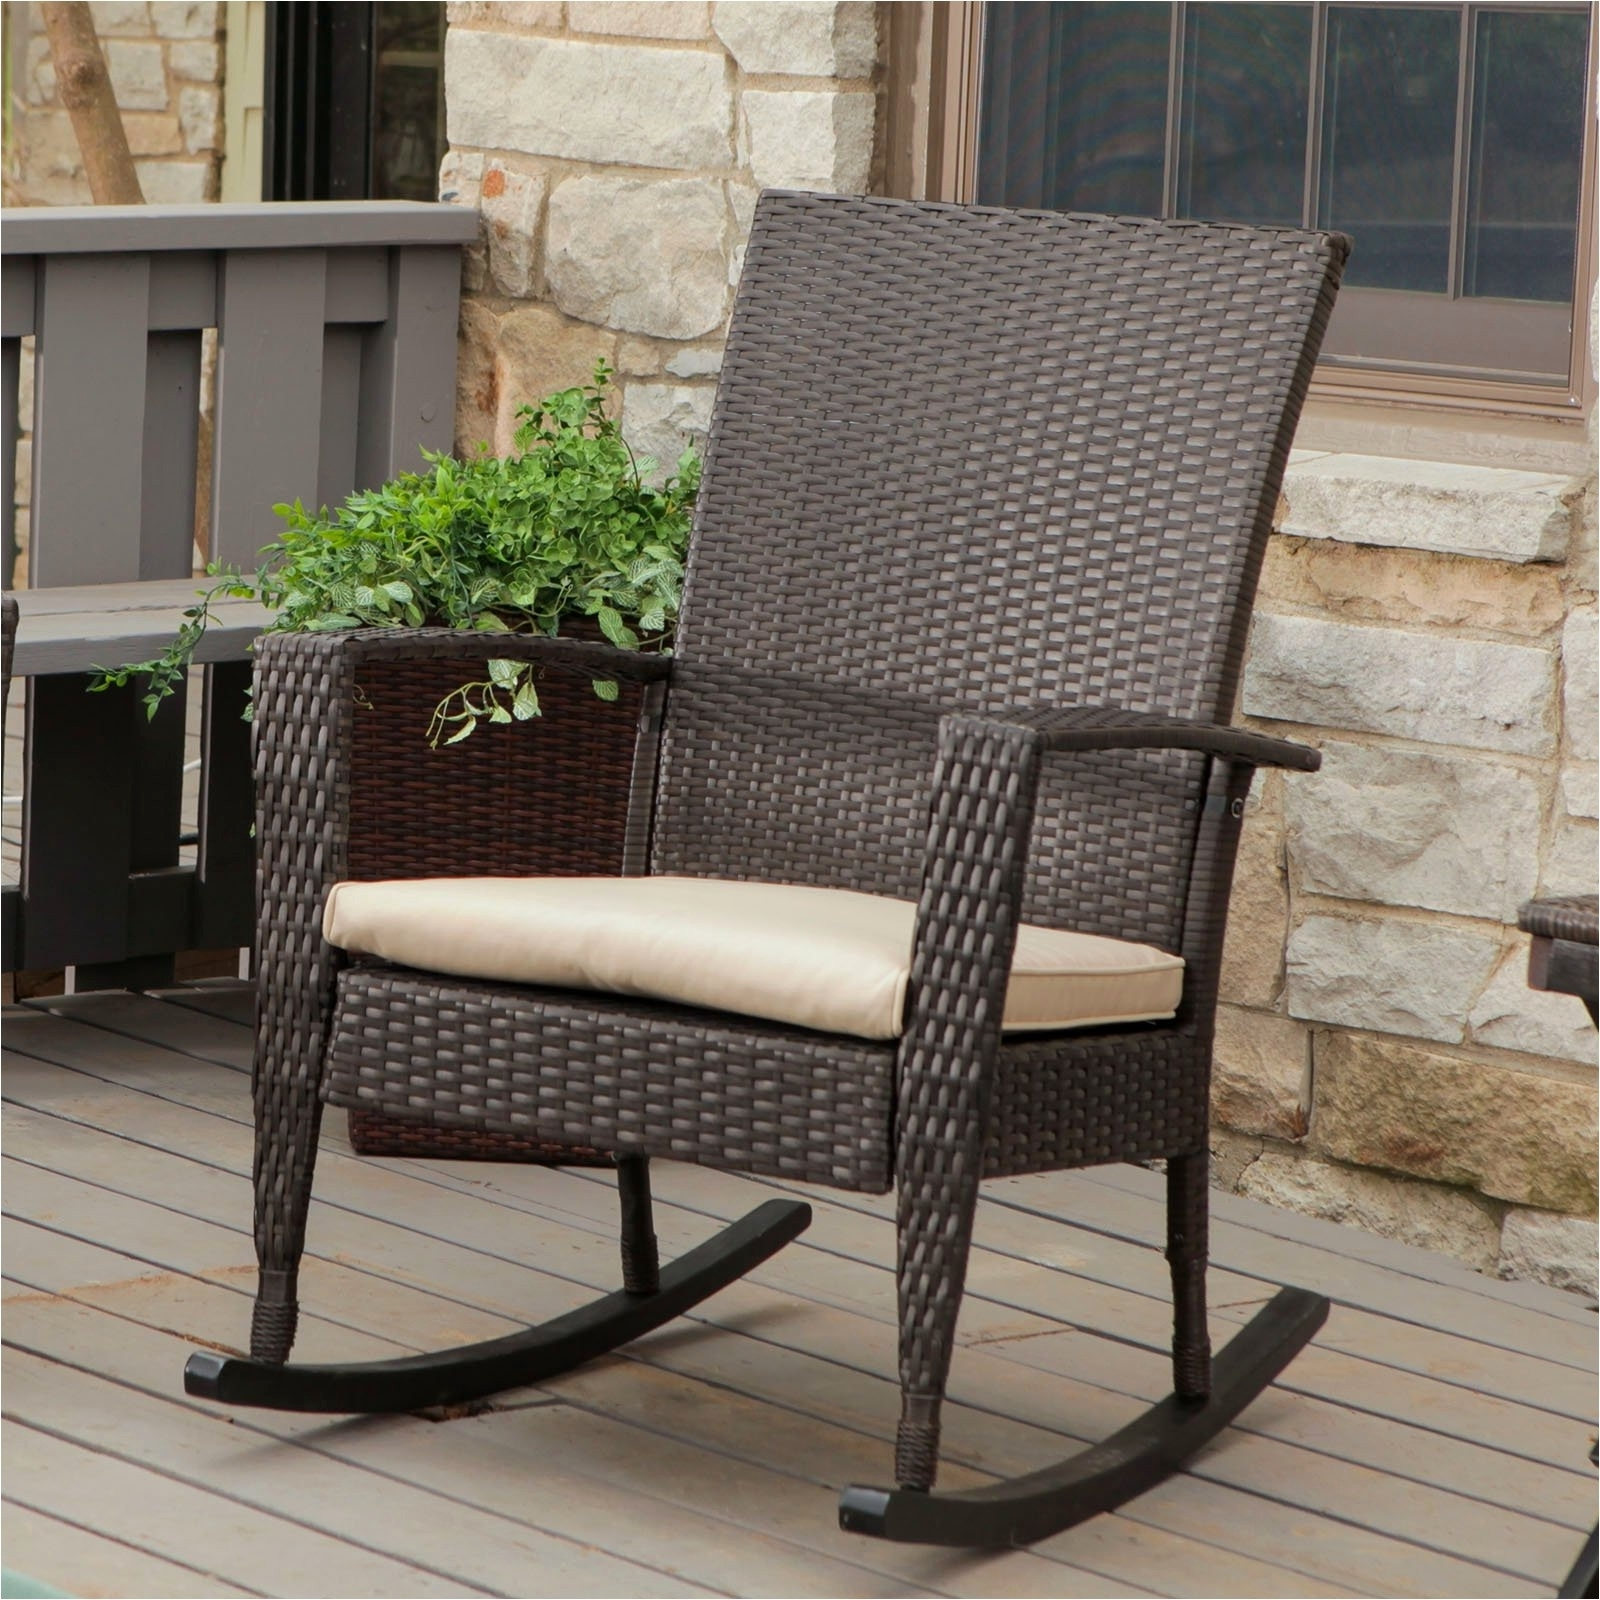 Rocking Chairs At Kroger Regarding Widely Used Patio : Kroger Patio Furniture Kroger Outdoor Furniture (View 3 of 15)